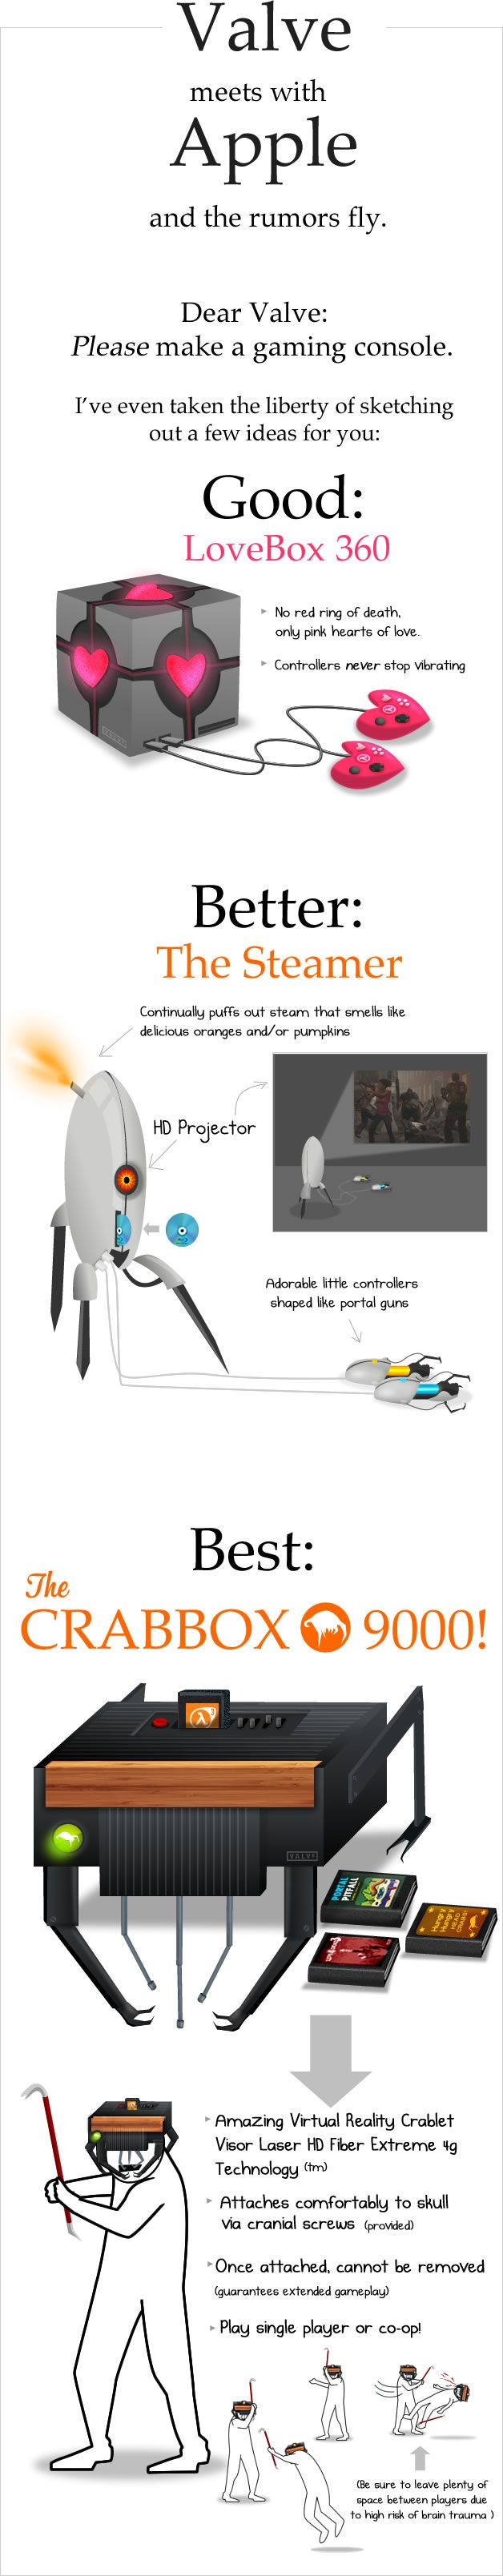 I wish all of my gaming devices were Portal inspired!